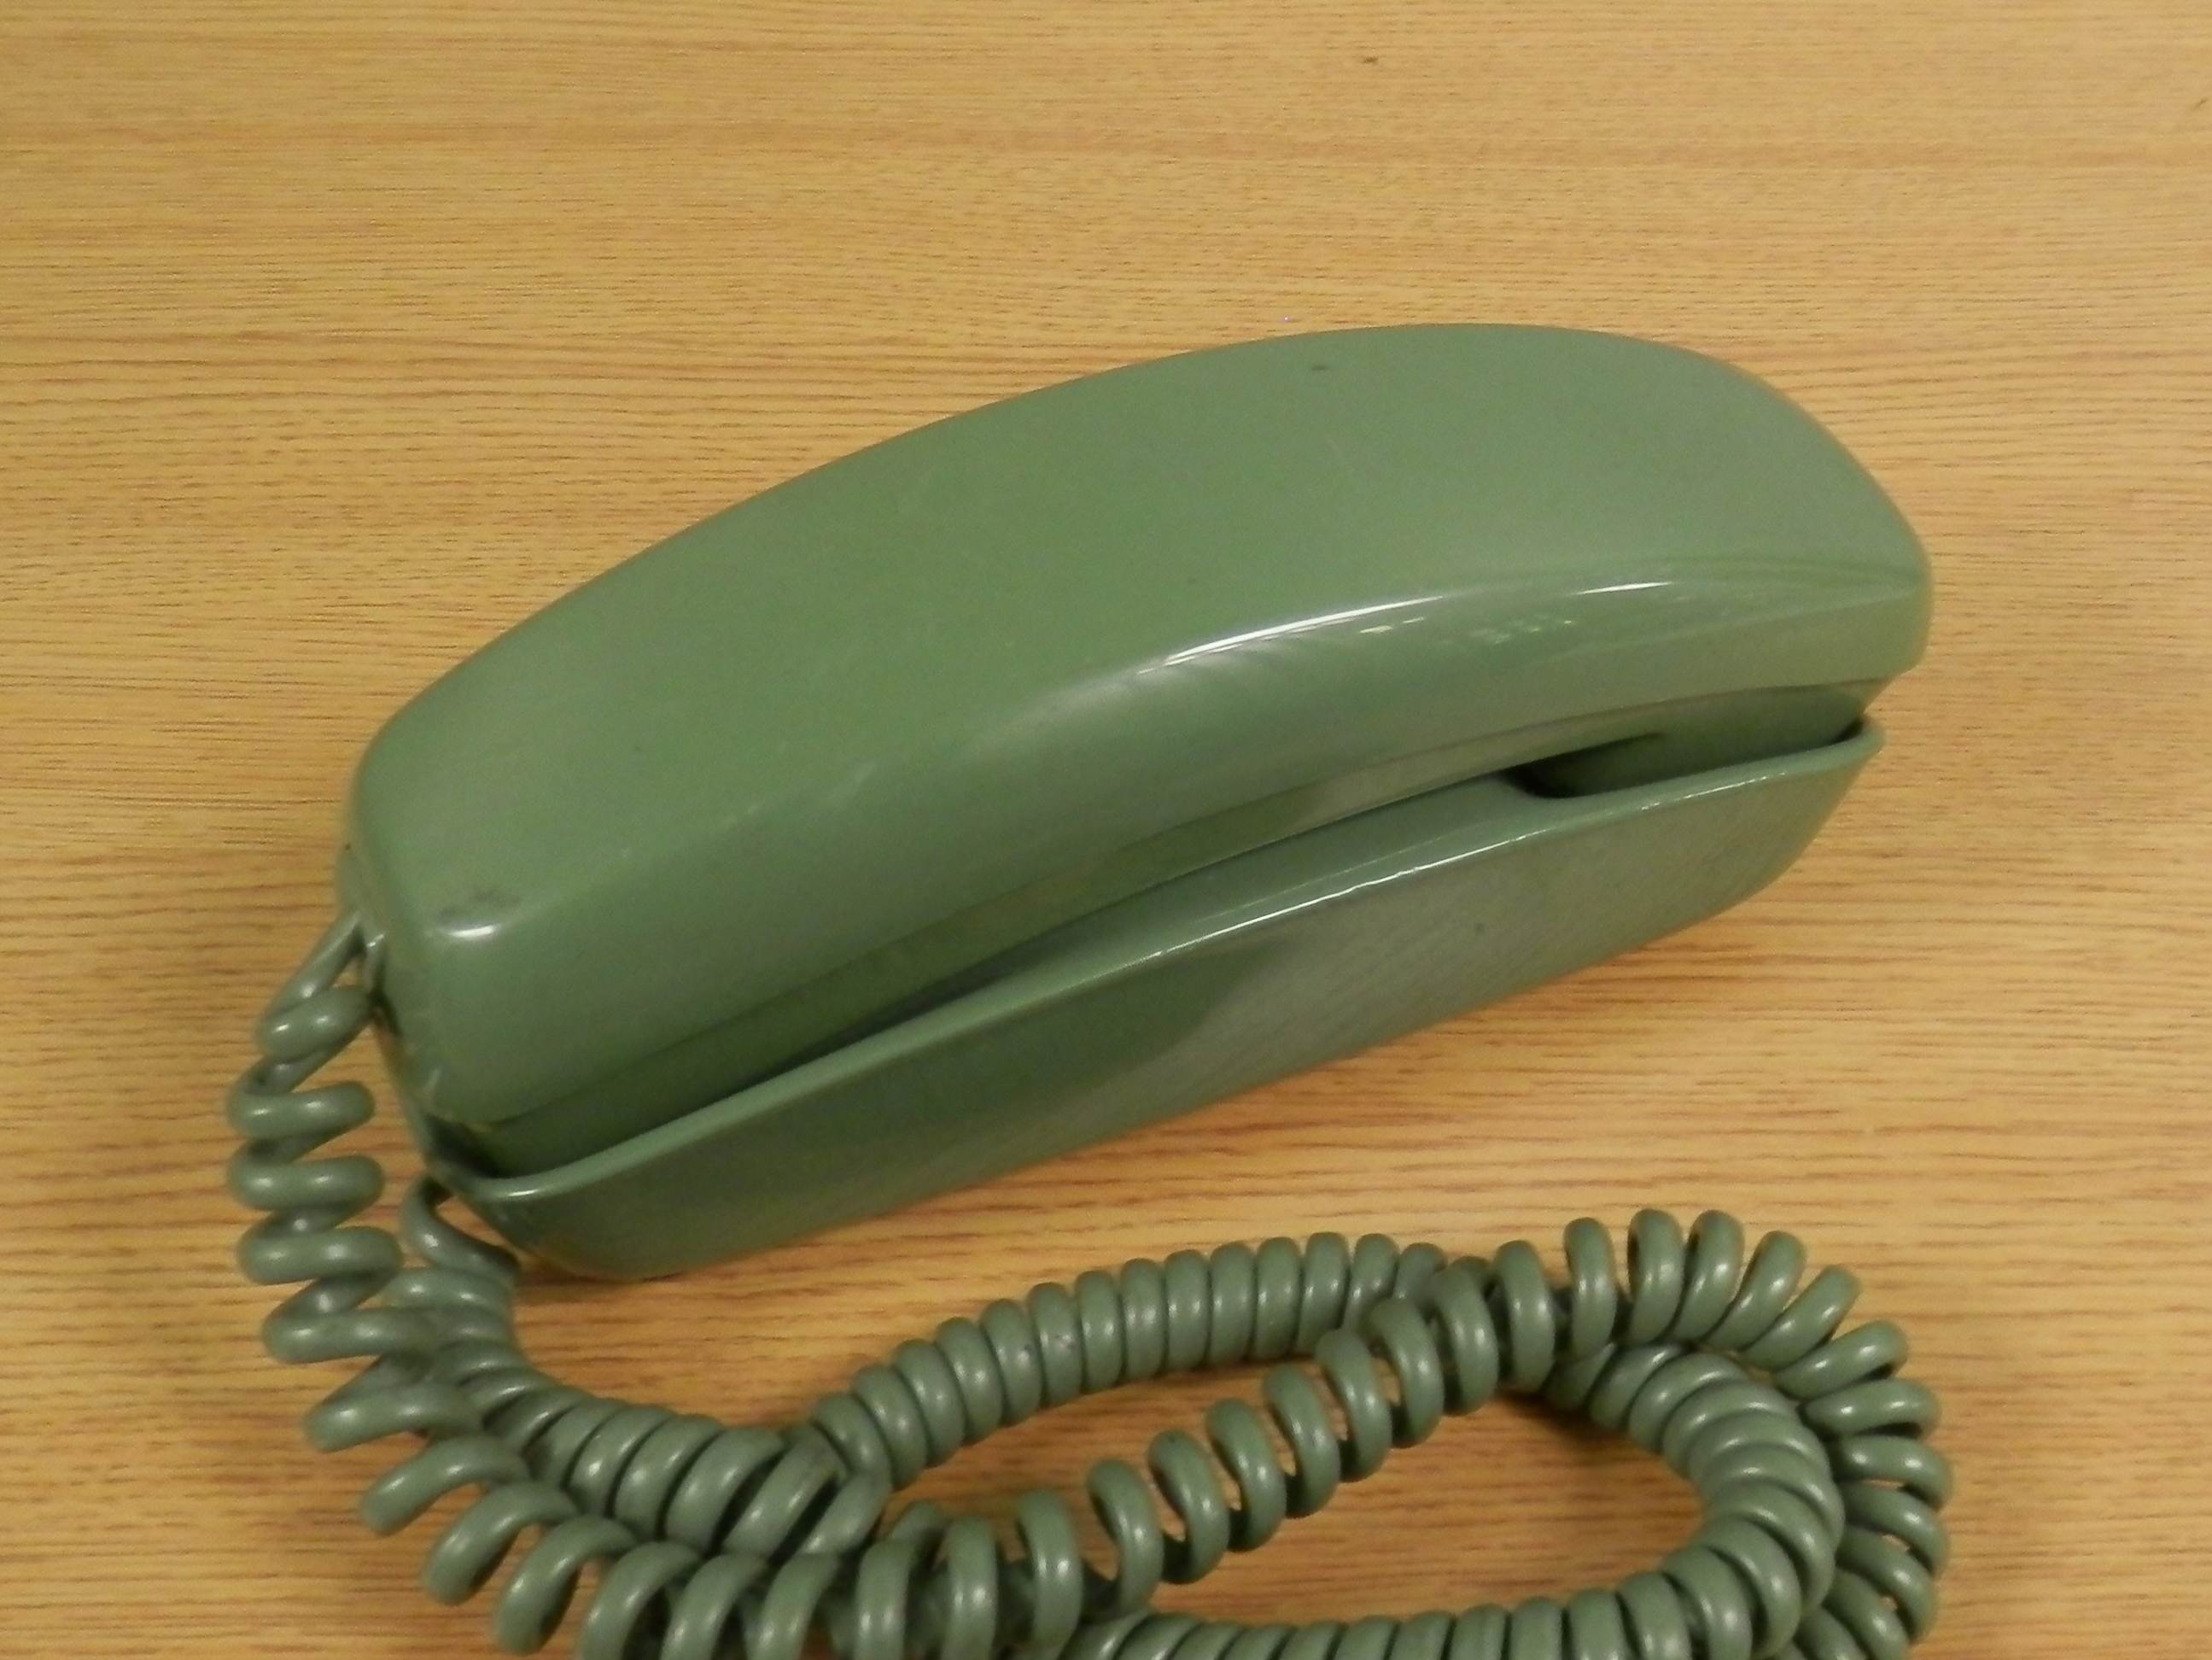 Trimline Phone olive green